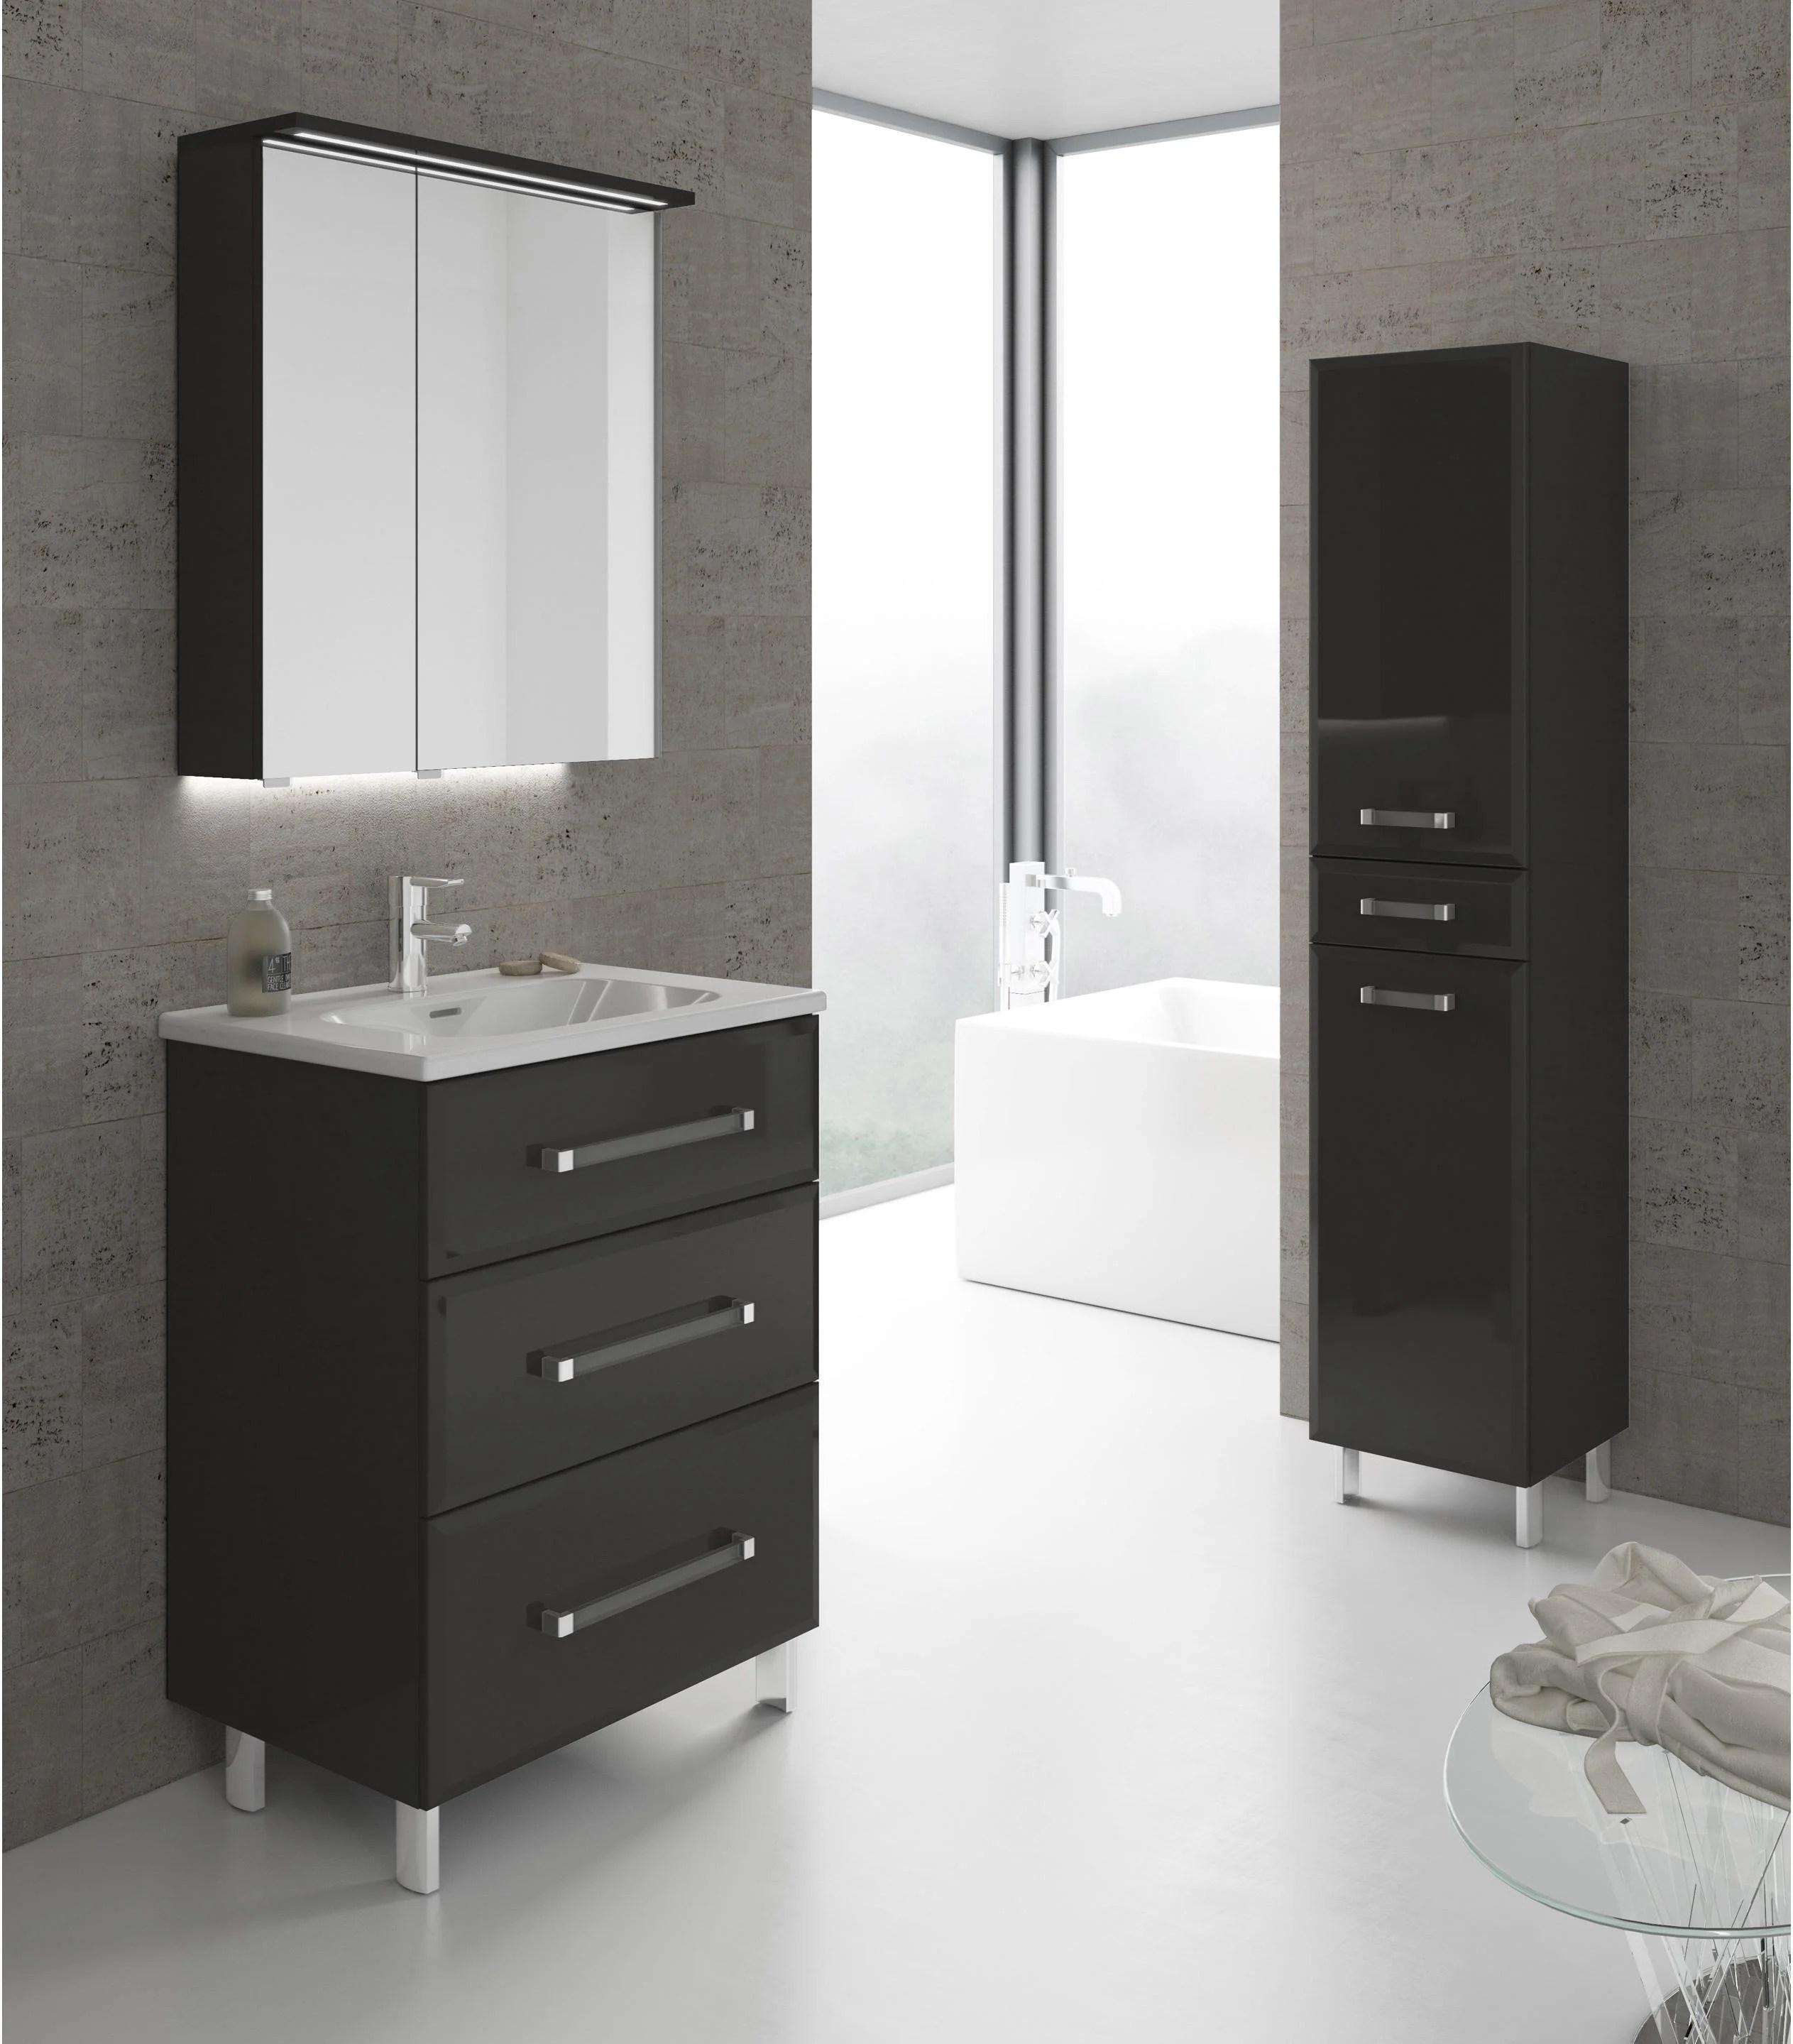 Leroy Merlin Meuble Salle De Bain Collection Opale Bright Shadow Online